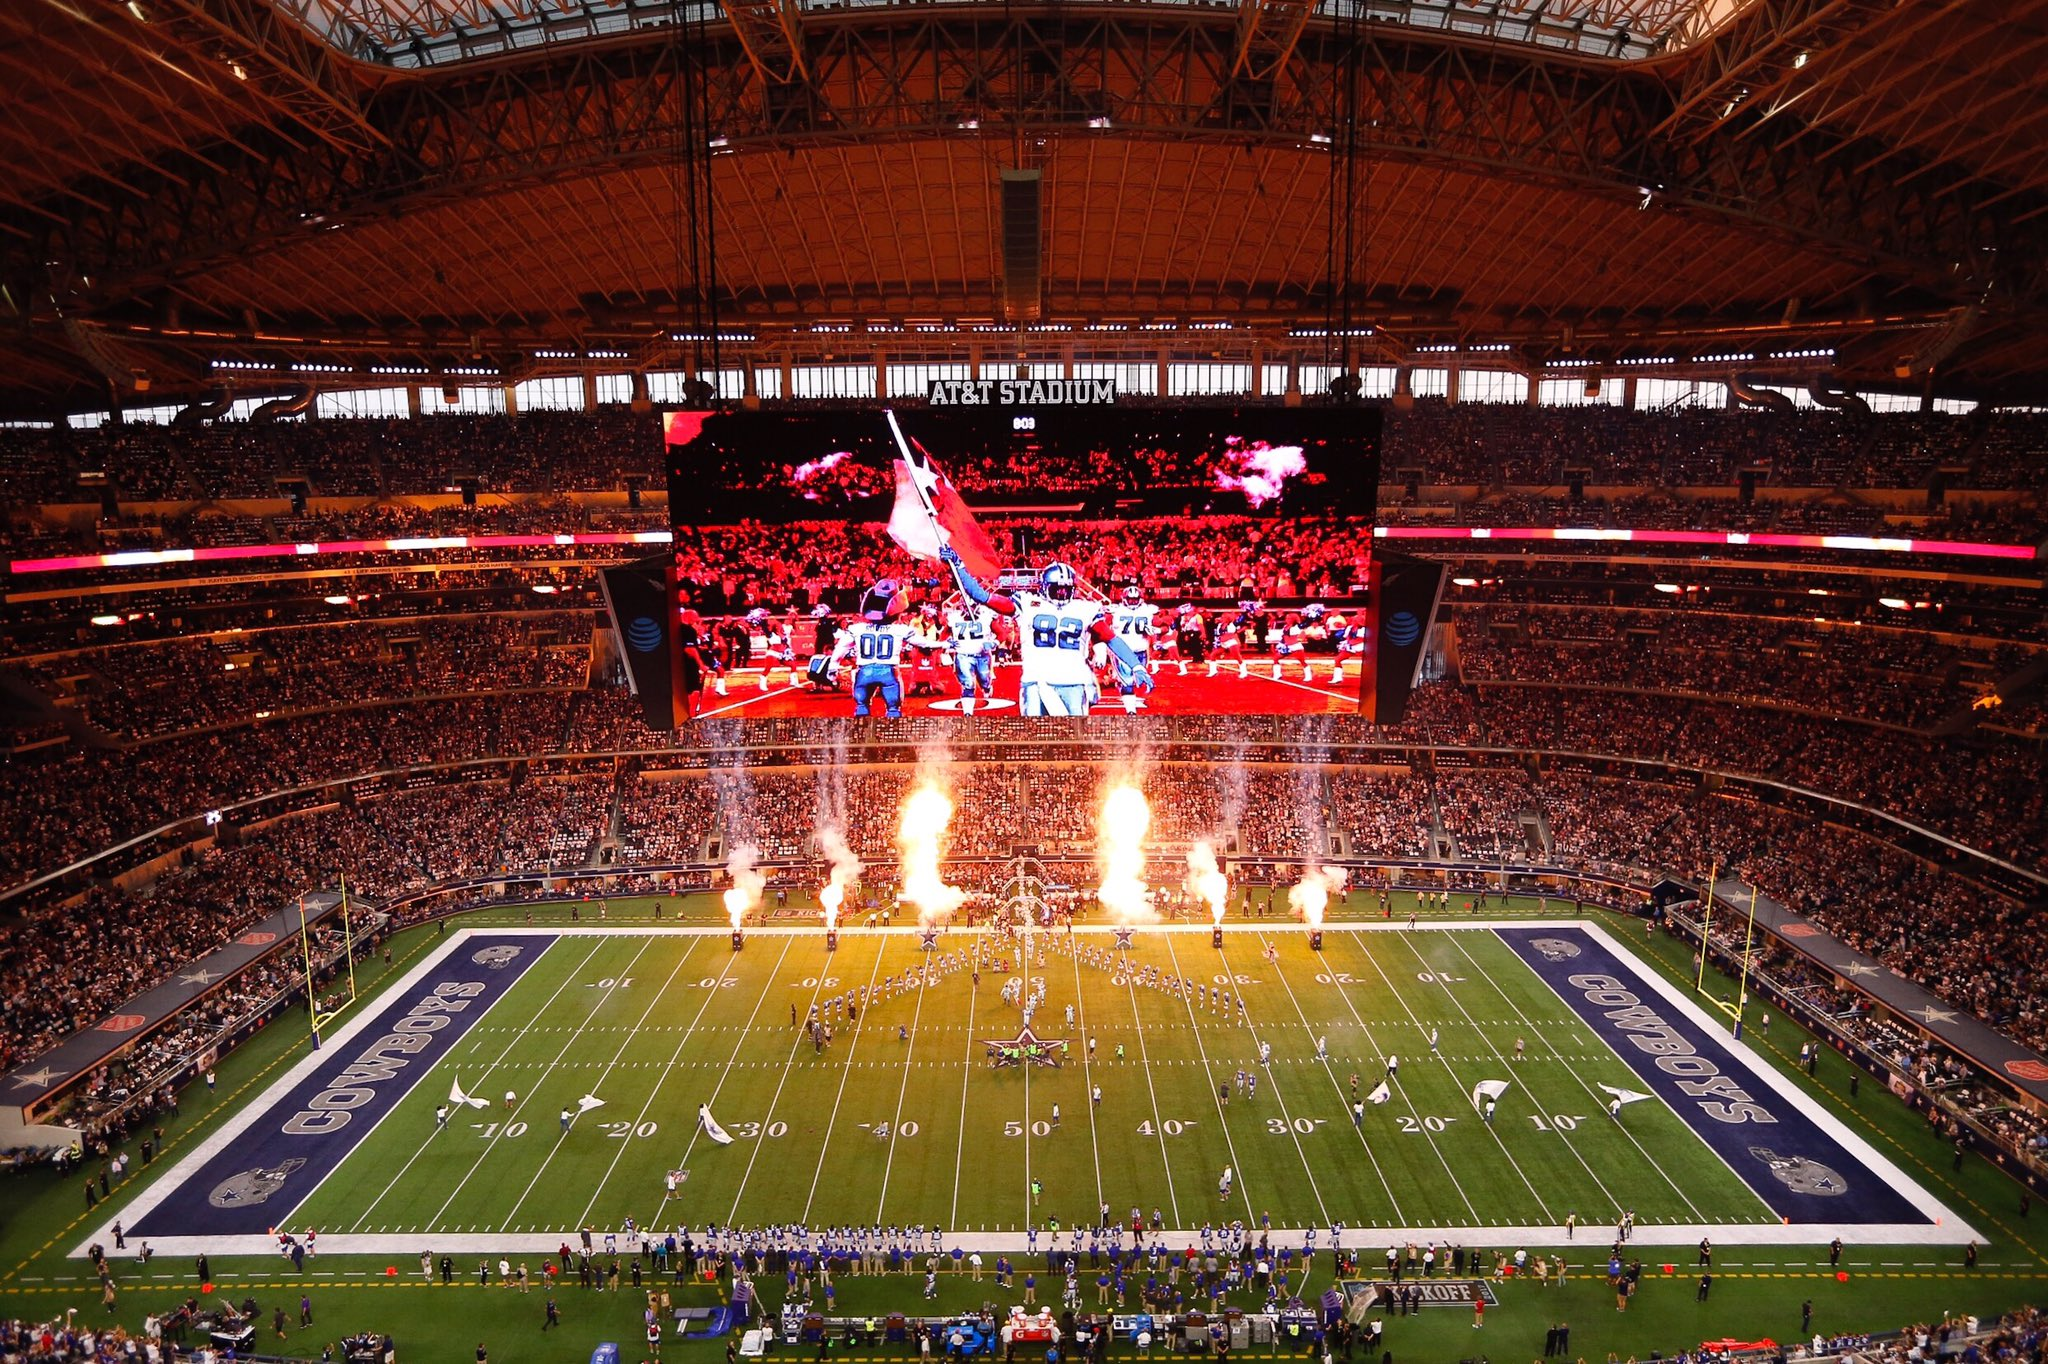 #CowboysNation you brought the ��  Total attendance for #NYGvsDAL is 93,183 https://t.co/PmttBtxT42